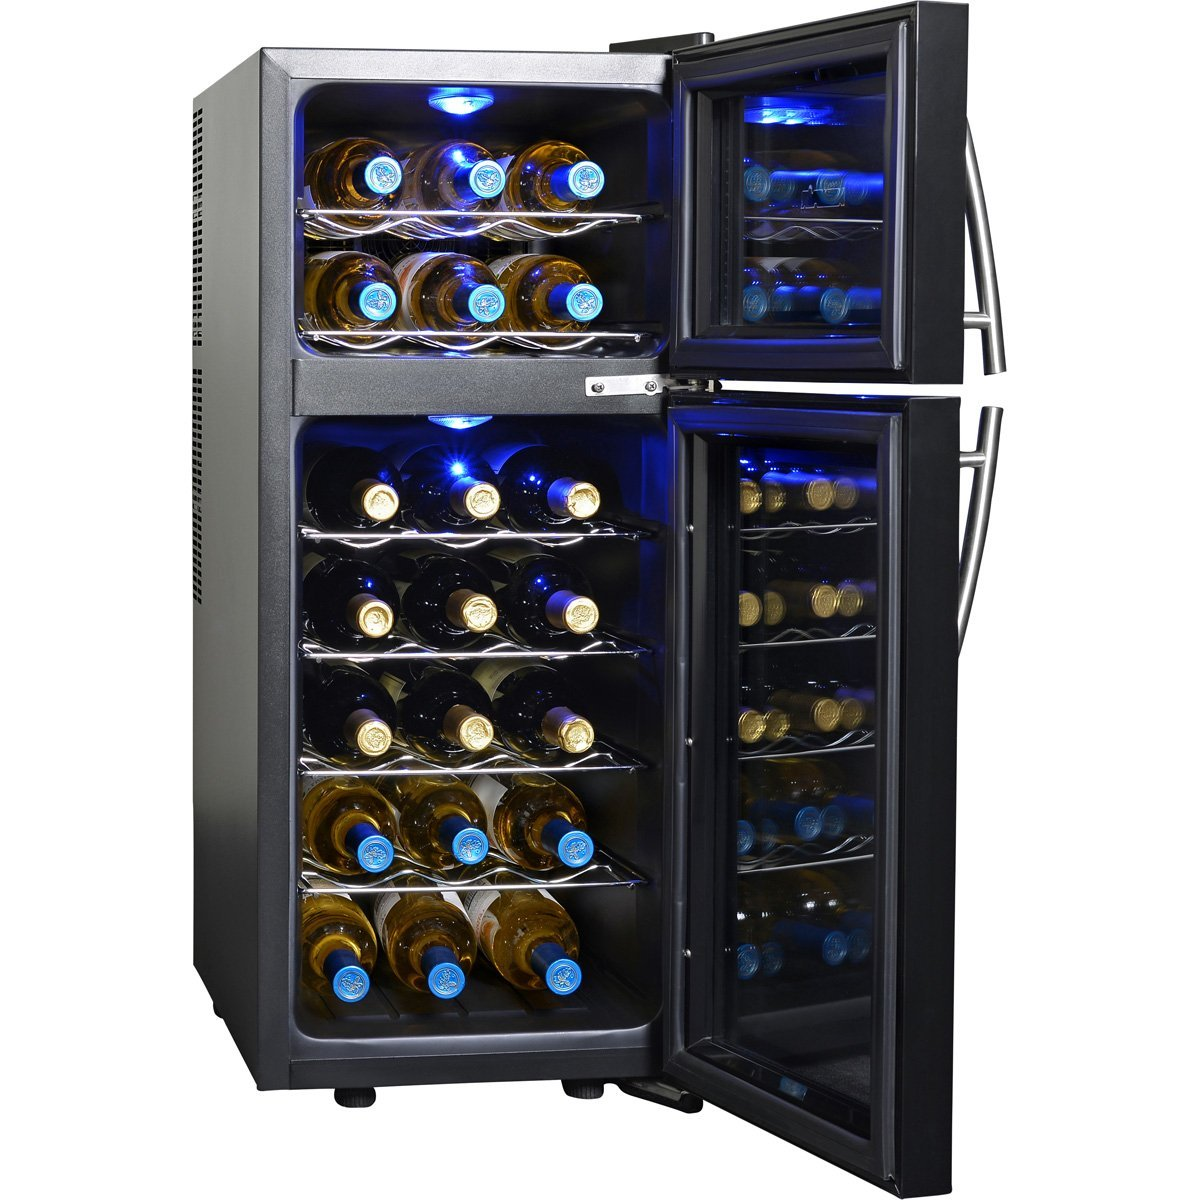 NewAir AW-210ED Dual Zone Thermoelectric Wine Cooler- 21 Bottle